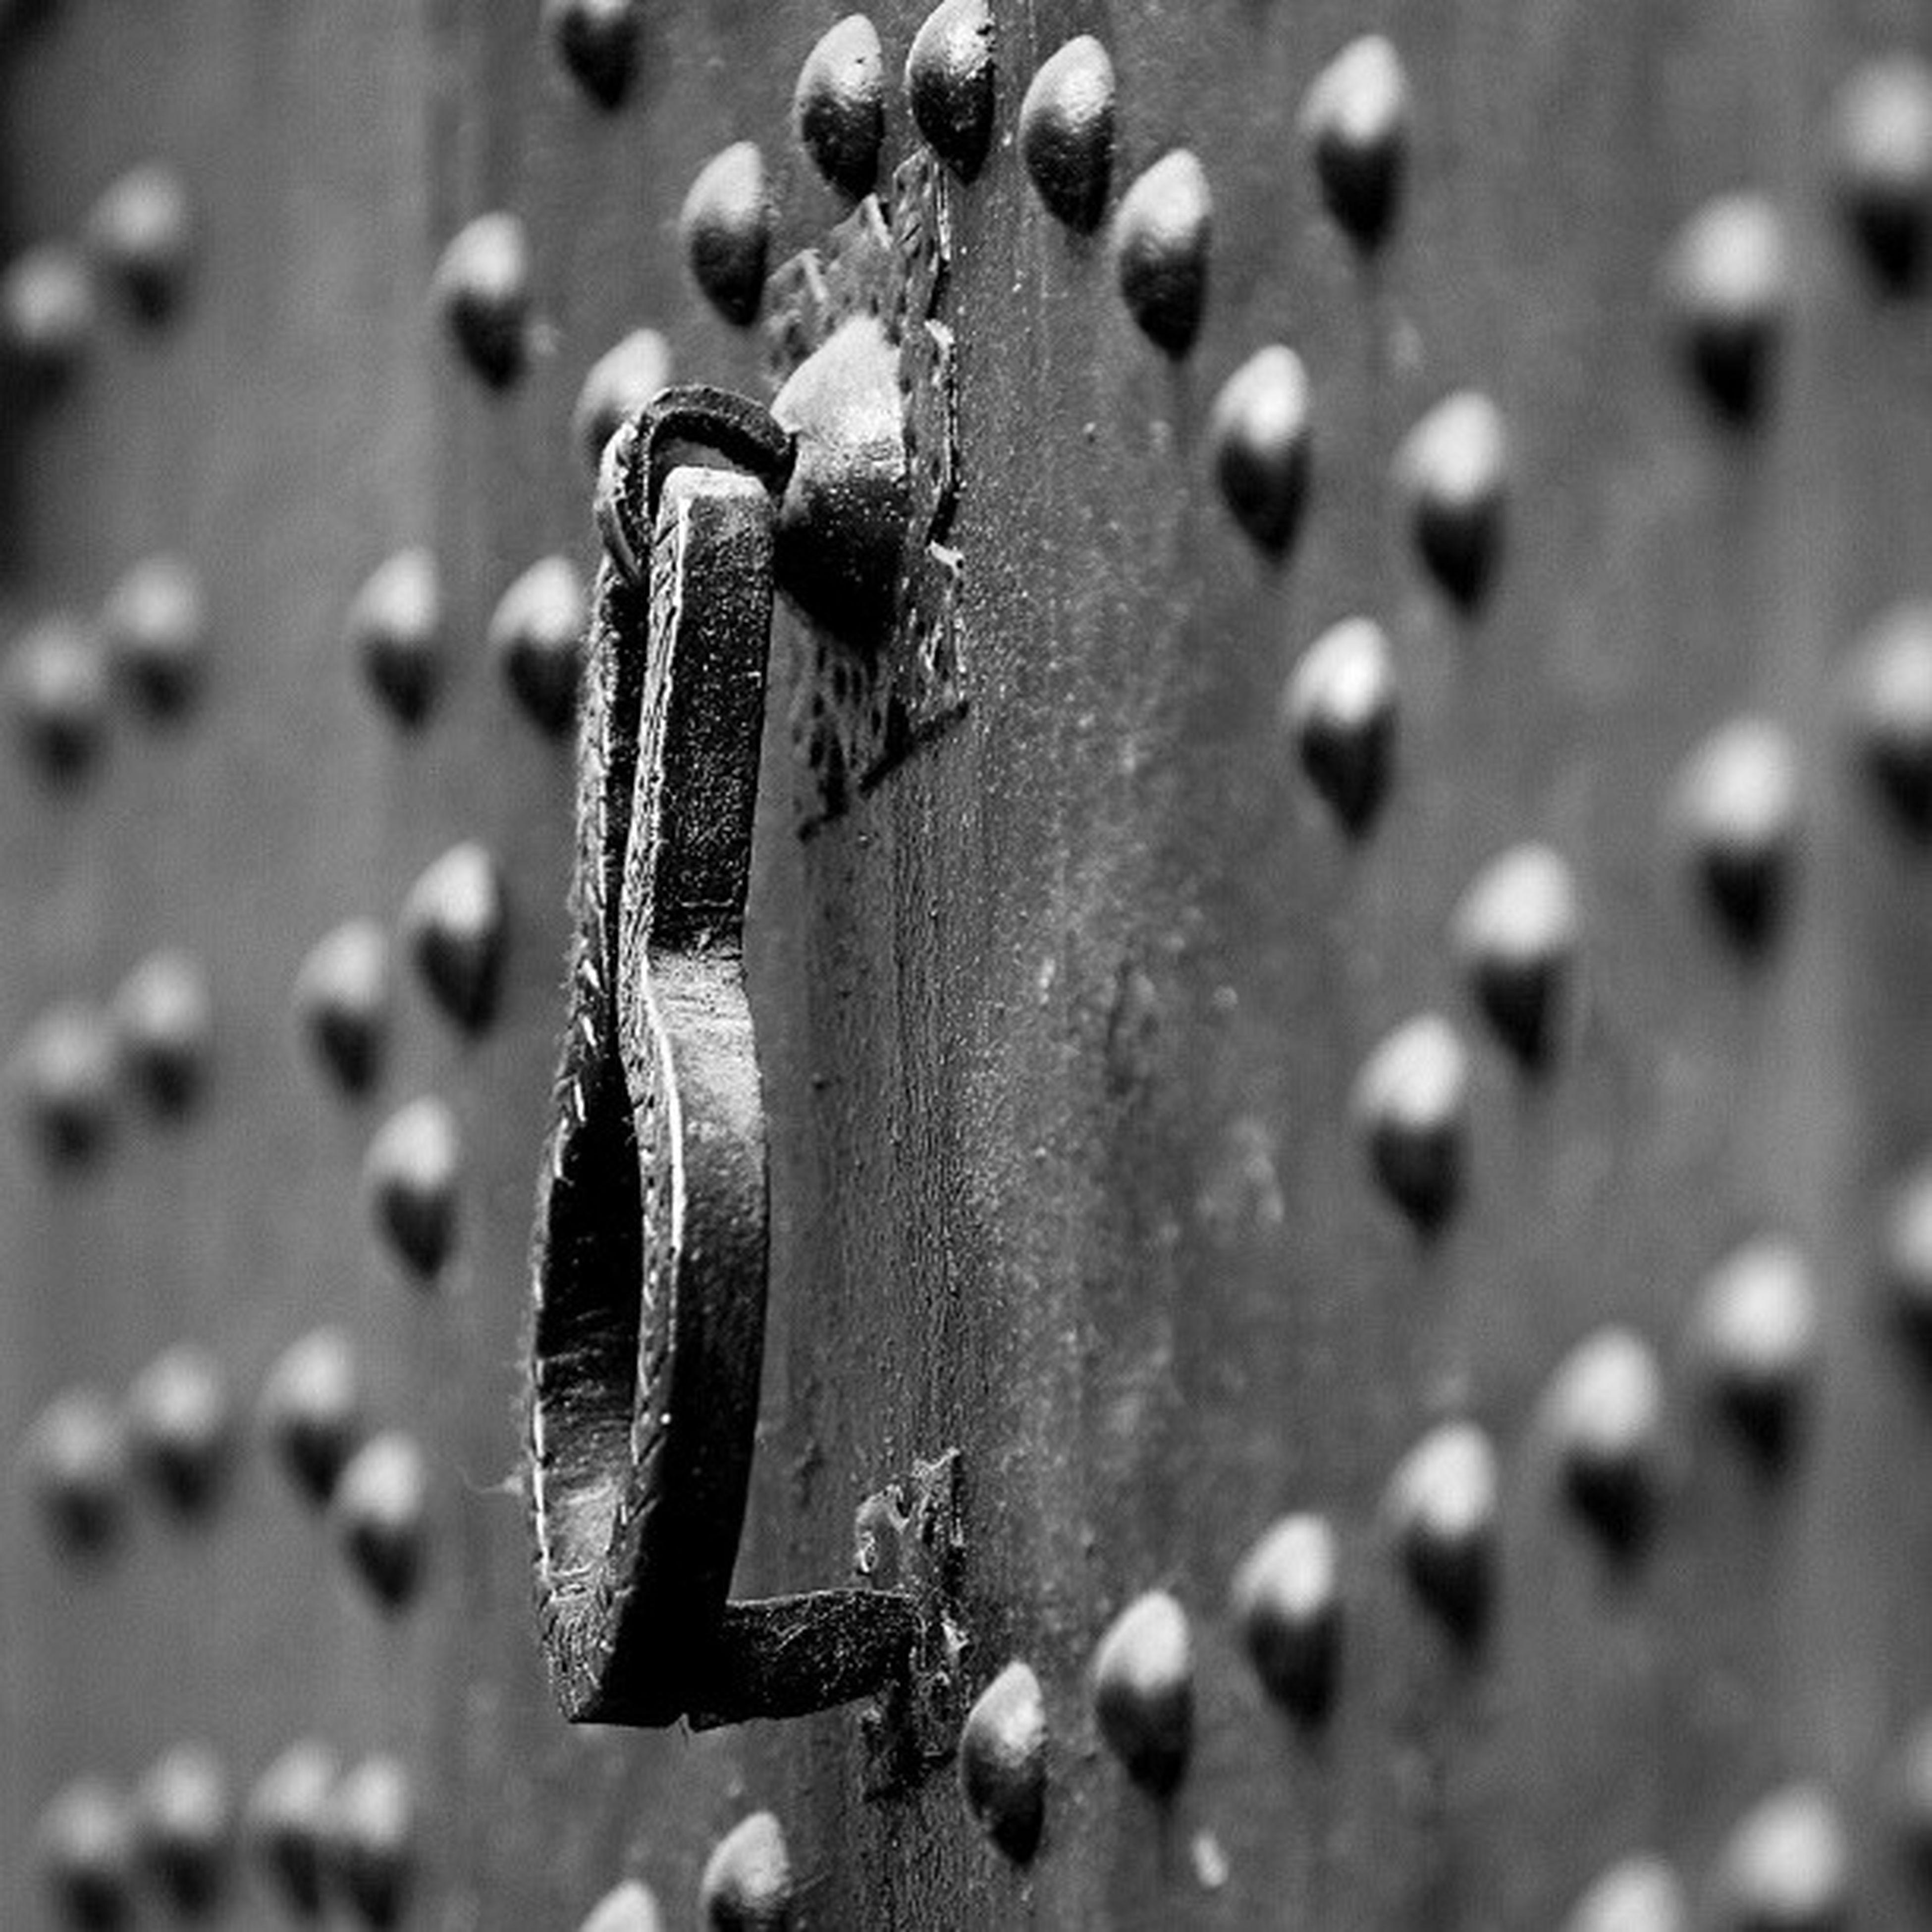 close-up, metal, focus on foreground, selective focus, metallic, rusty, chain, hanging, no people, detail, old, day, damaged, outdoors, part of, still life, abandoned, protection, drop